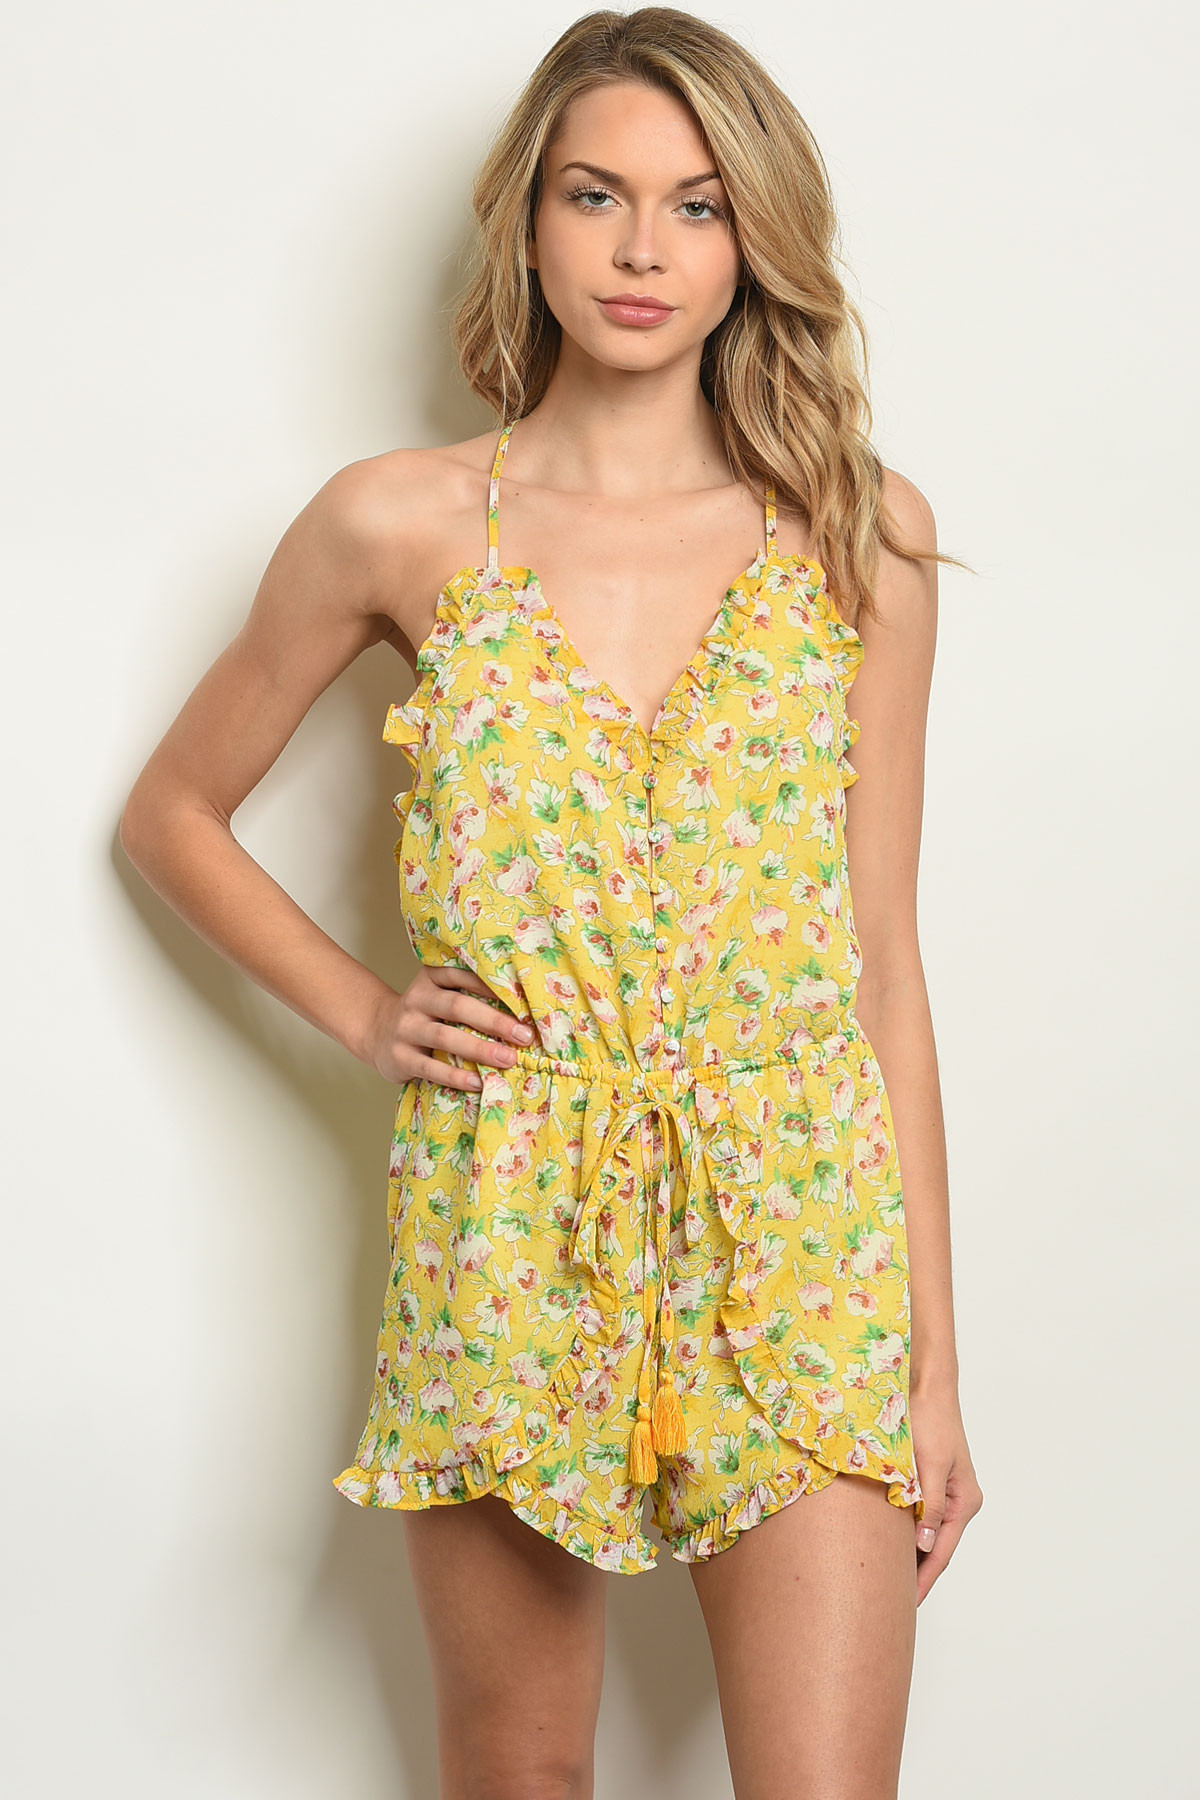 shop for authentic lovely luster utterly stylish S10-6-1-R1525 YELLOW FLORAL ROMPER 3-2-1